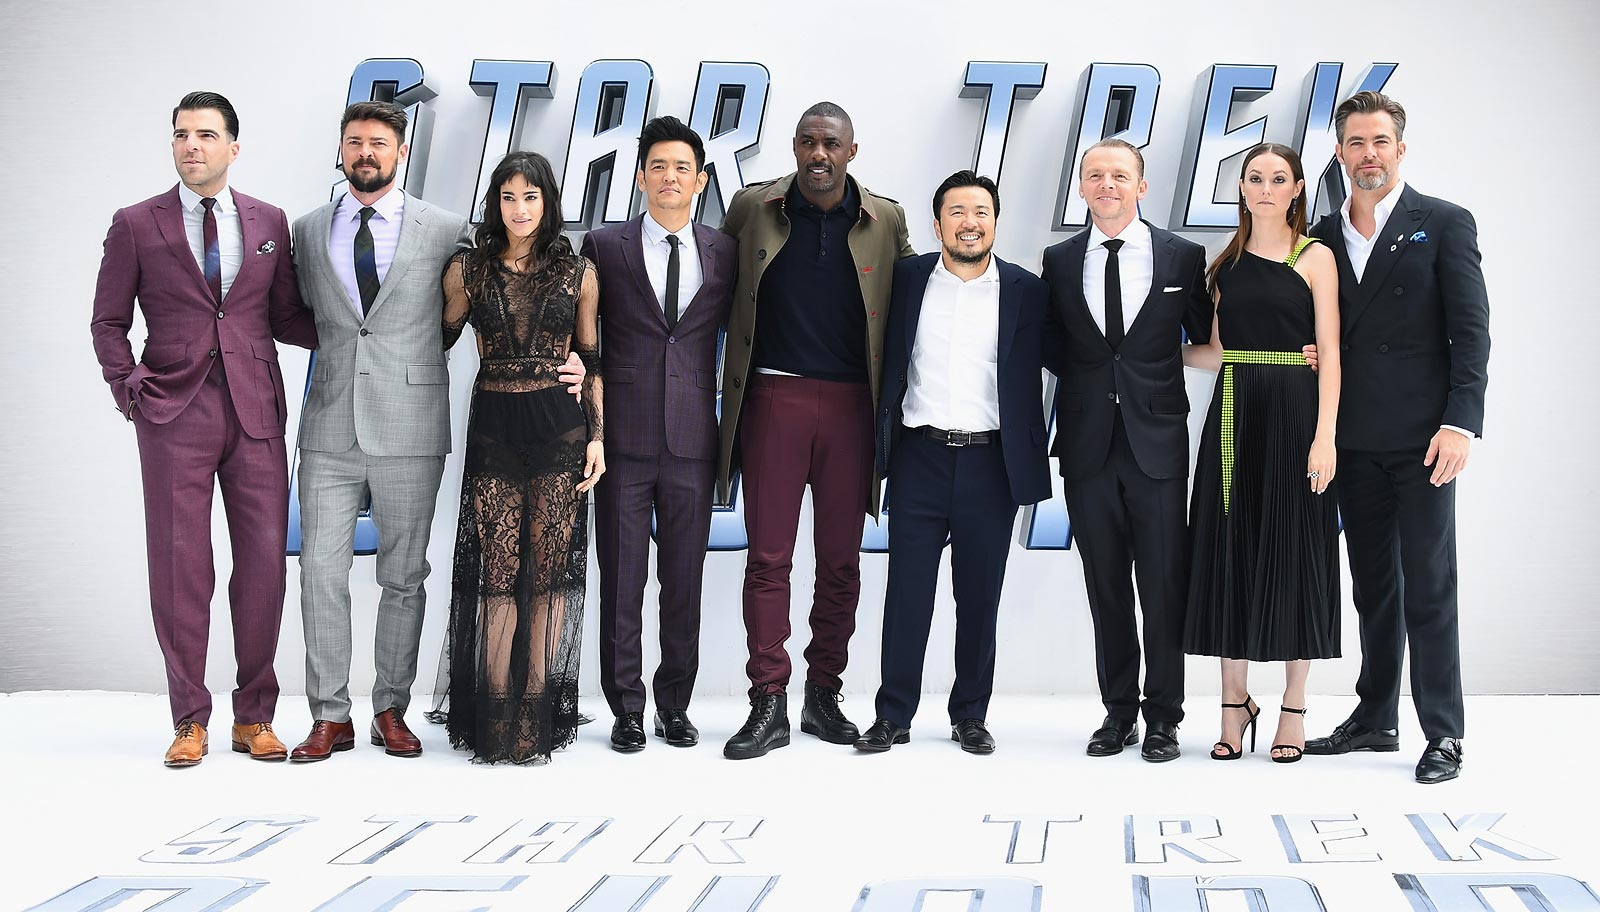 Star Trek Beyond Cast Wallpaper.jpg